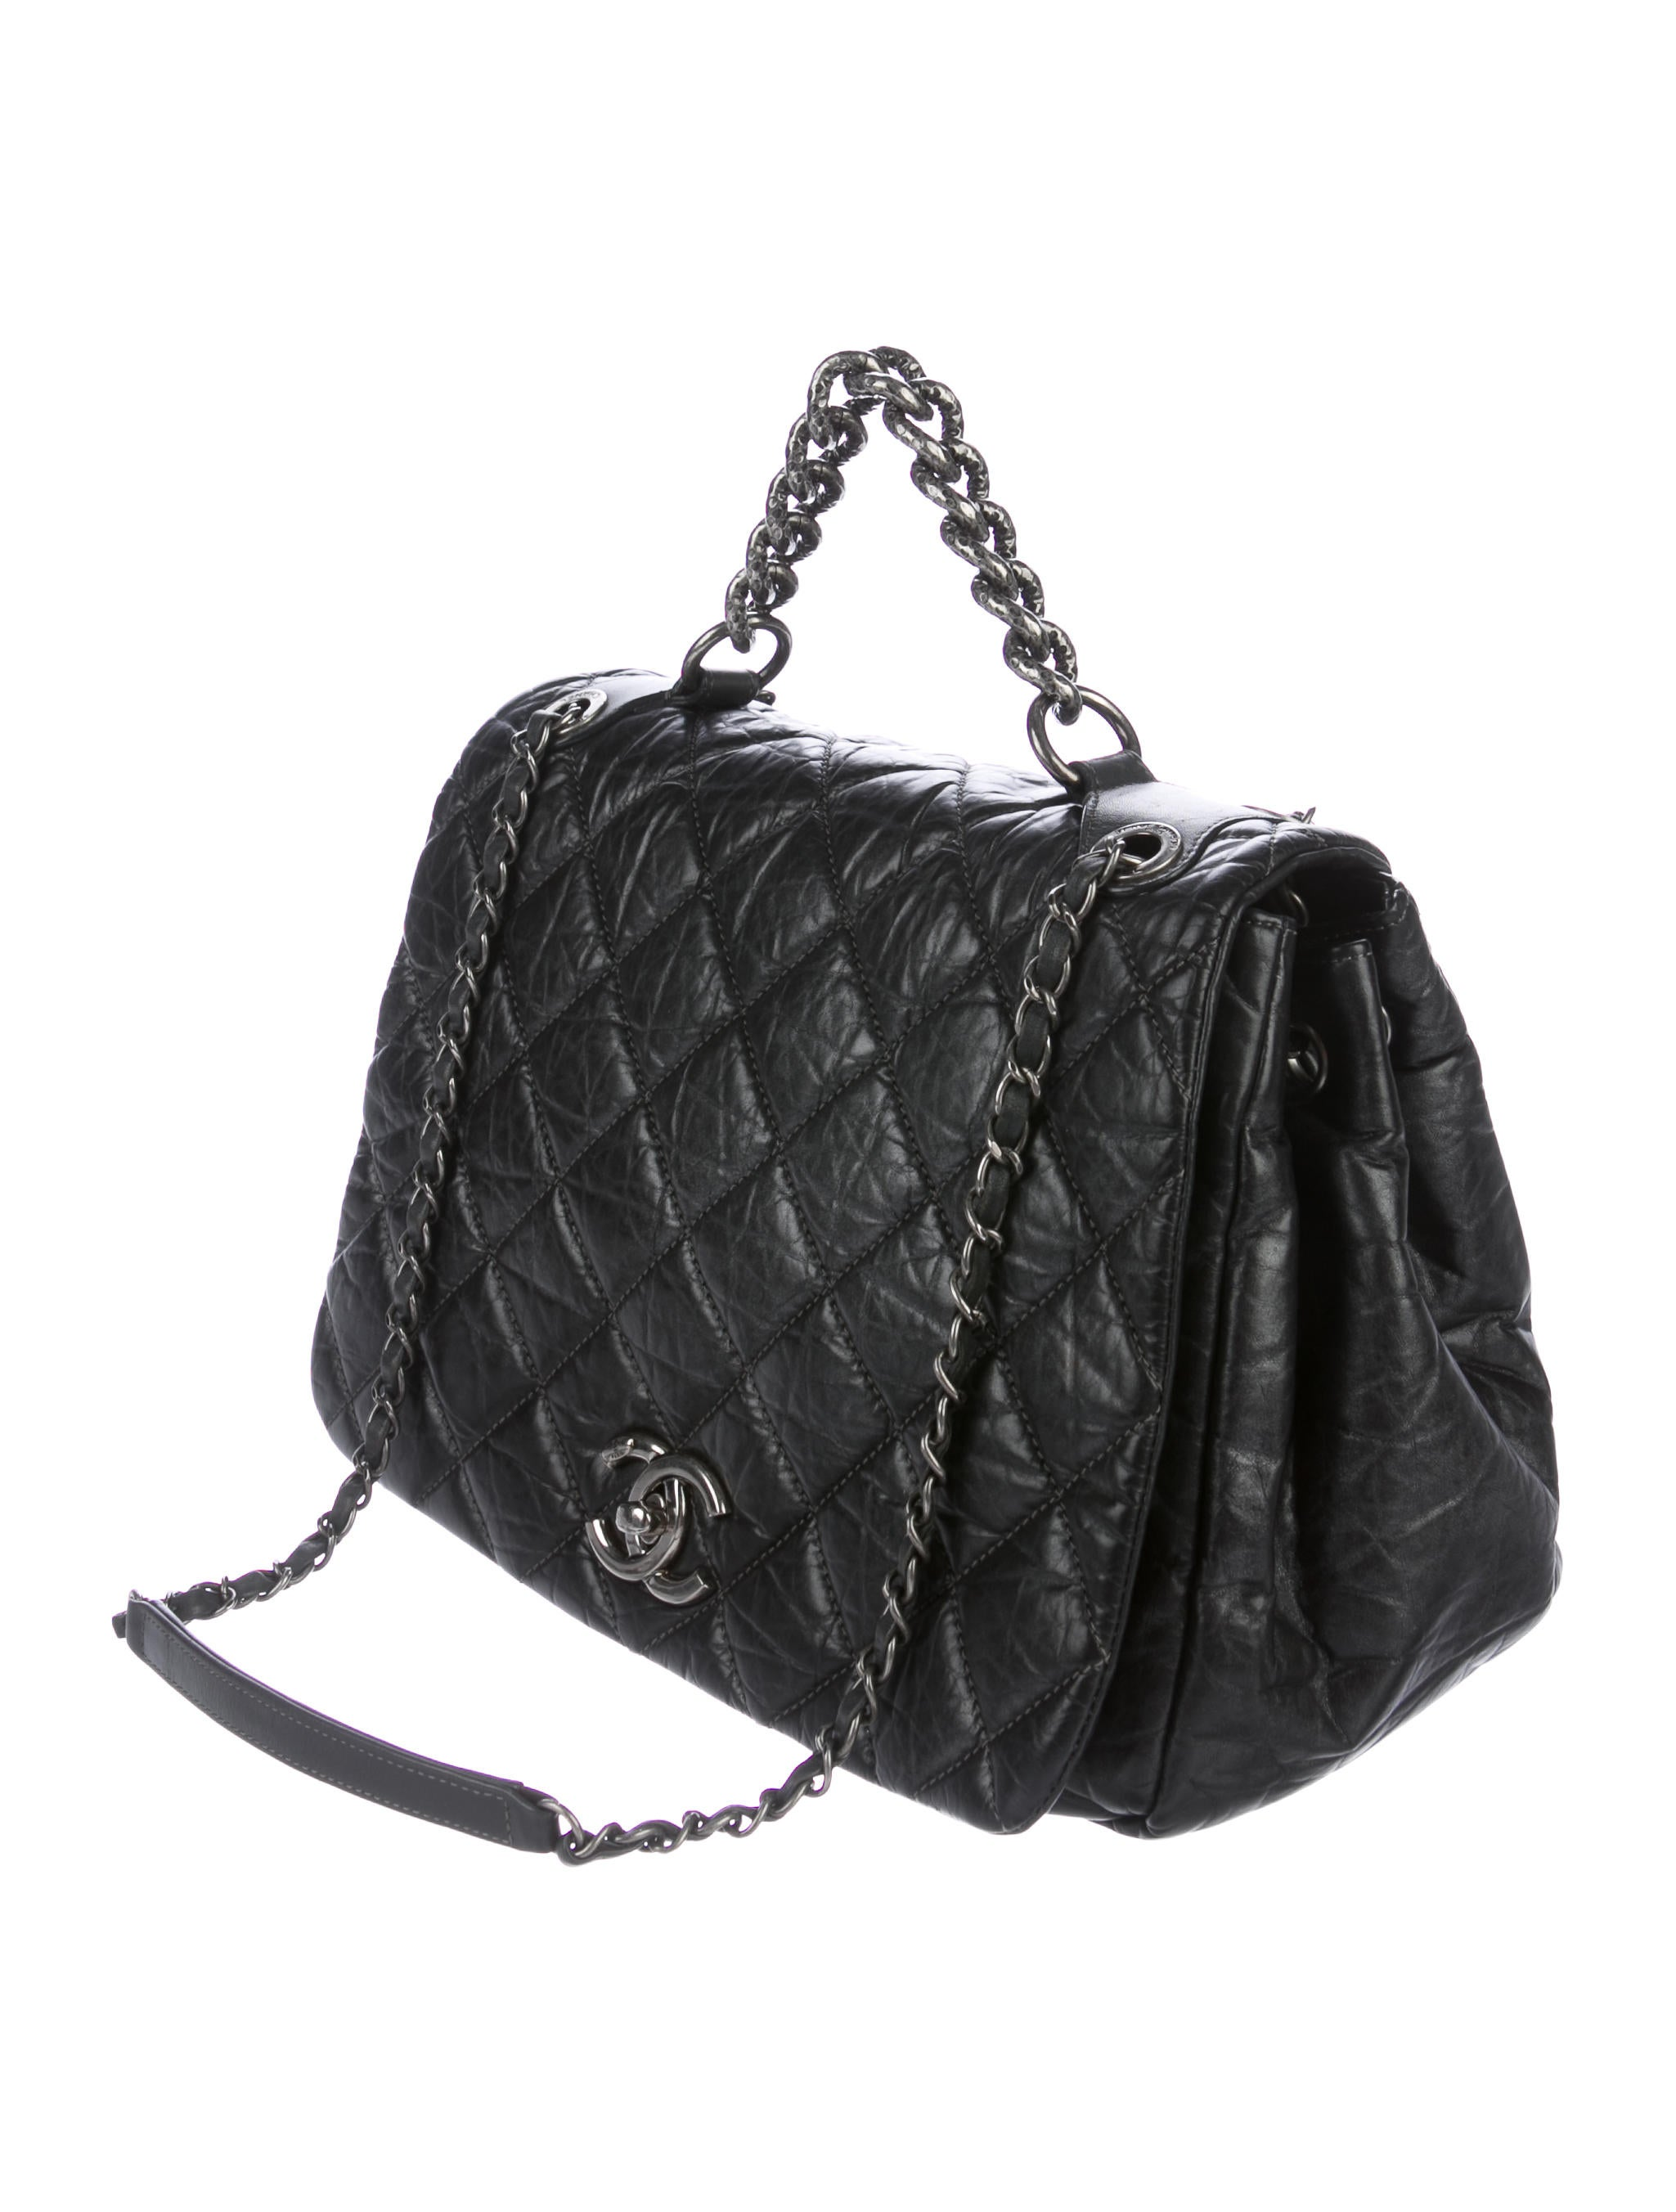 Chanel Large Grocery Shopping Basket W Tags: Chanel Pondicherry Large Flap Bag